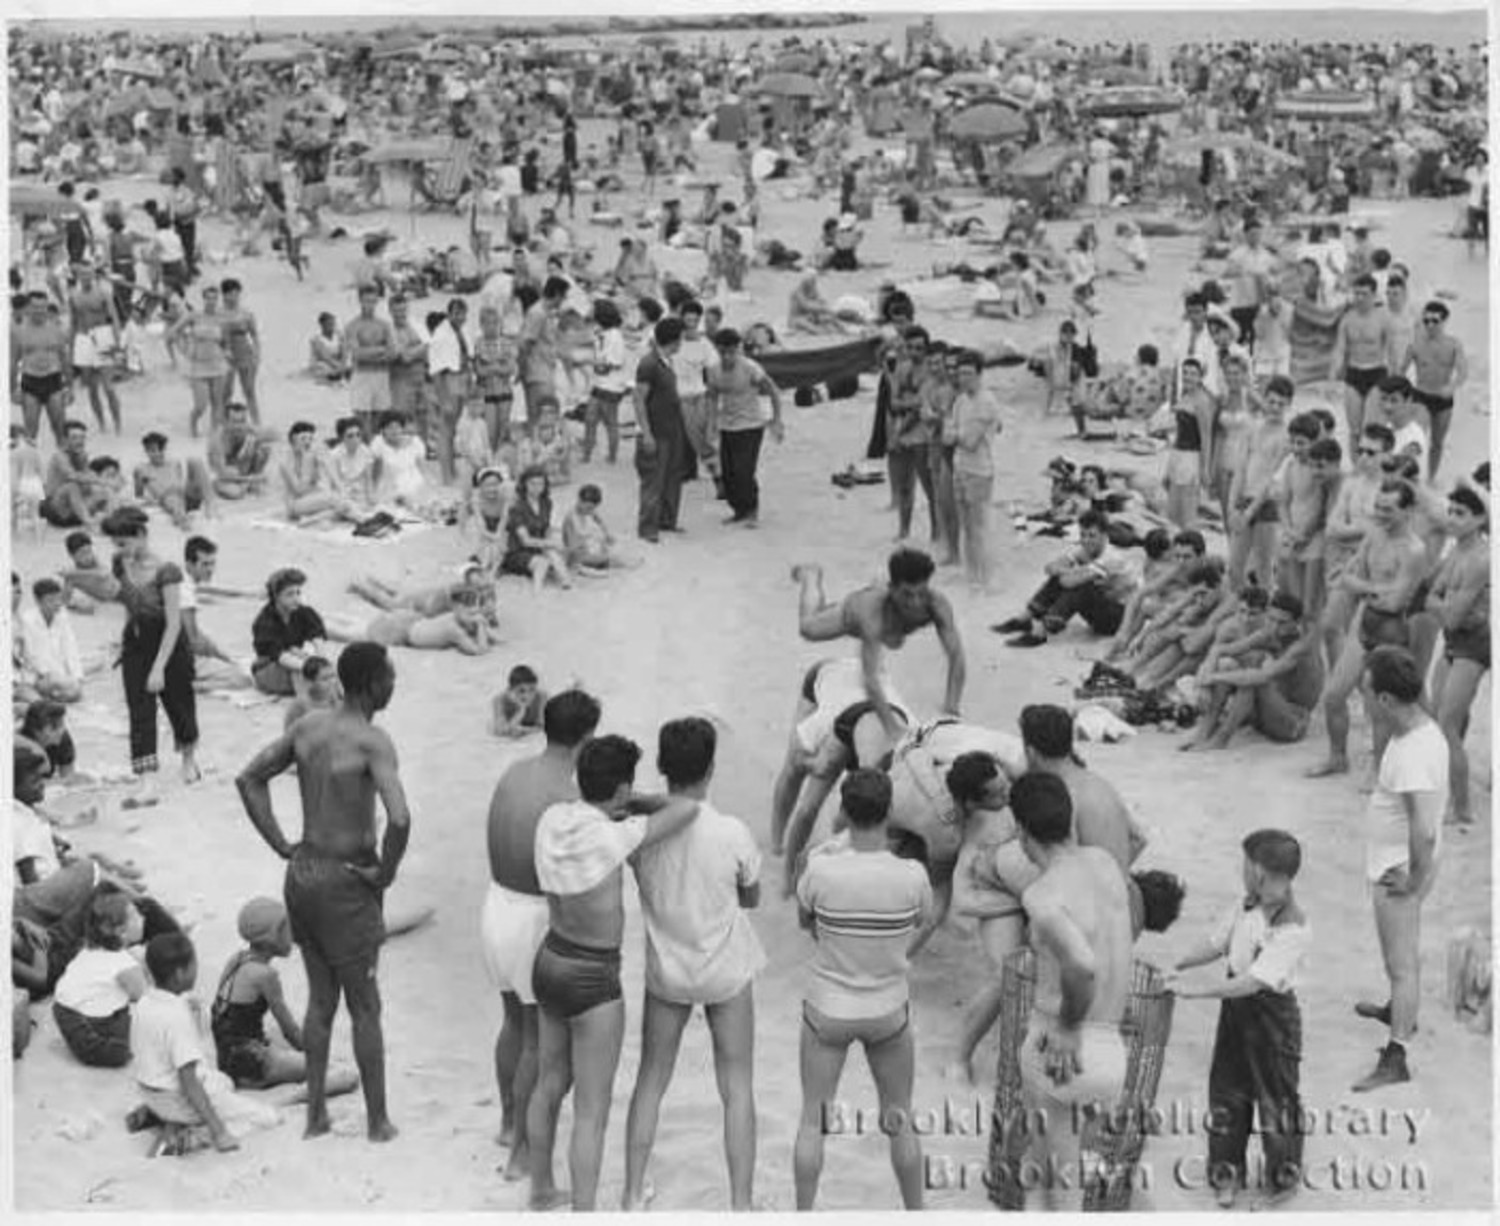 The original caption says that on this date in 1953, 1.3M people visited Coney Island!